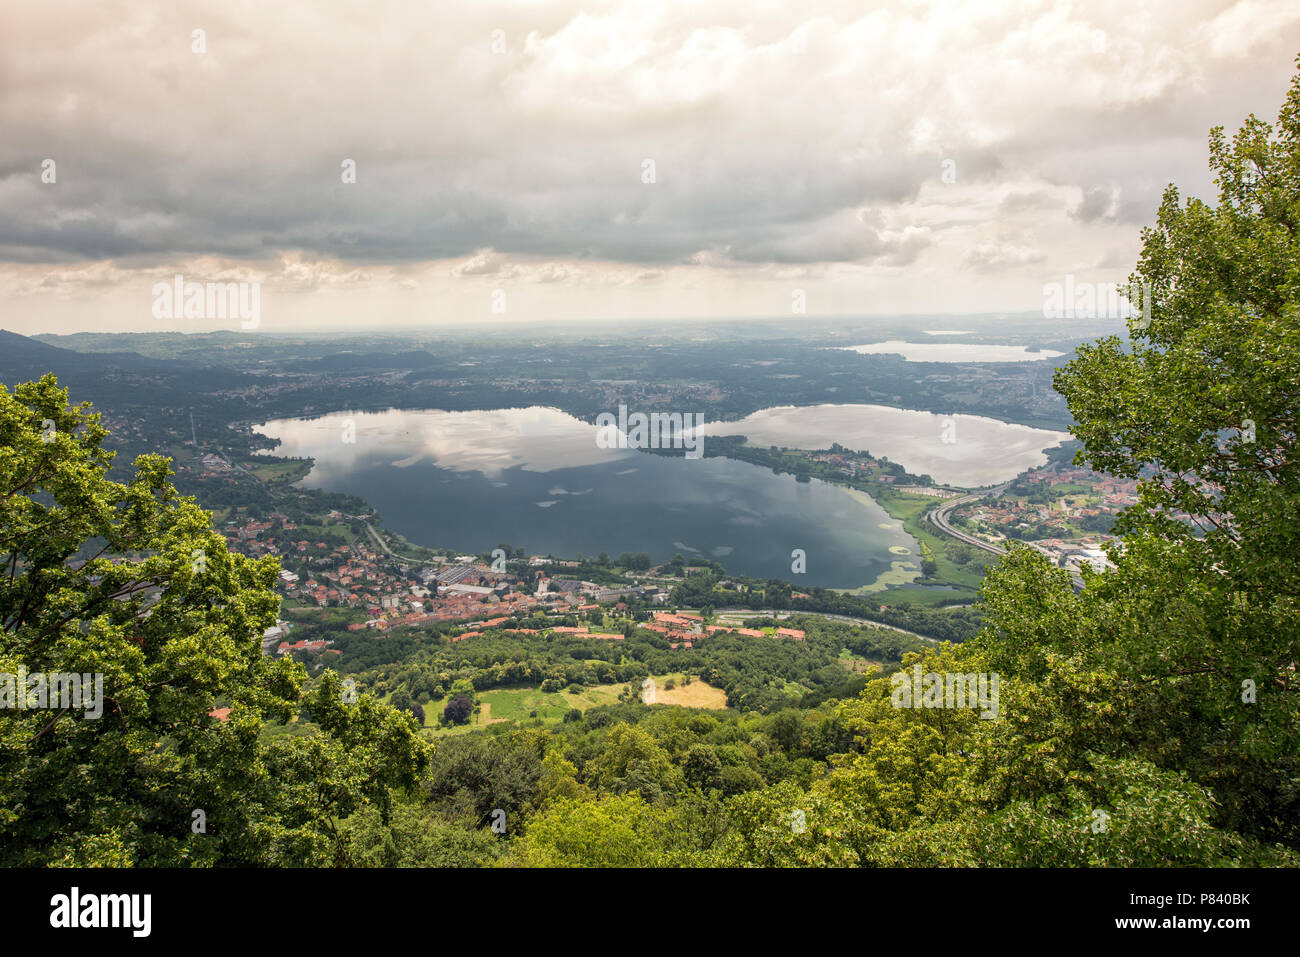 View from the Monte Barro Regional Park near Lecco, Lombardia, Italy of the Italian lake district amidst lush greenery in a scenic landscape - Stock Image